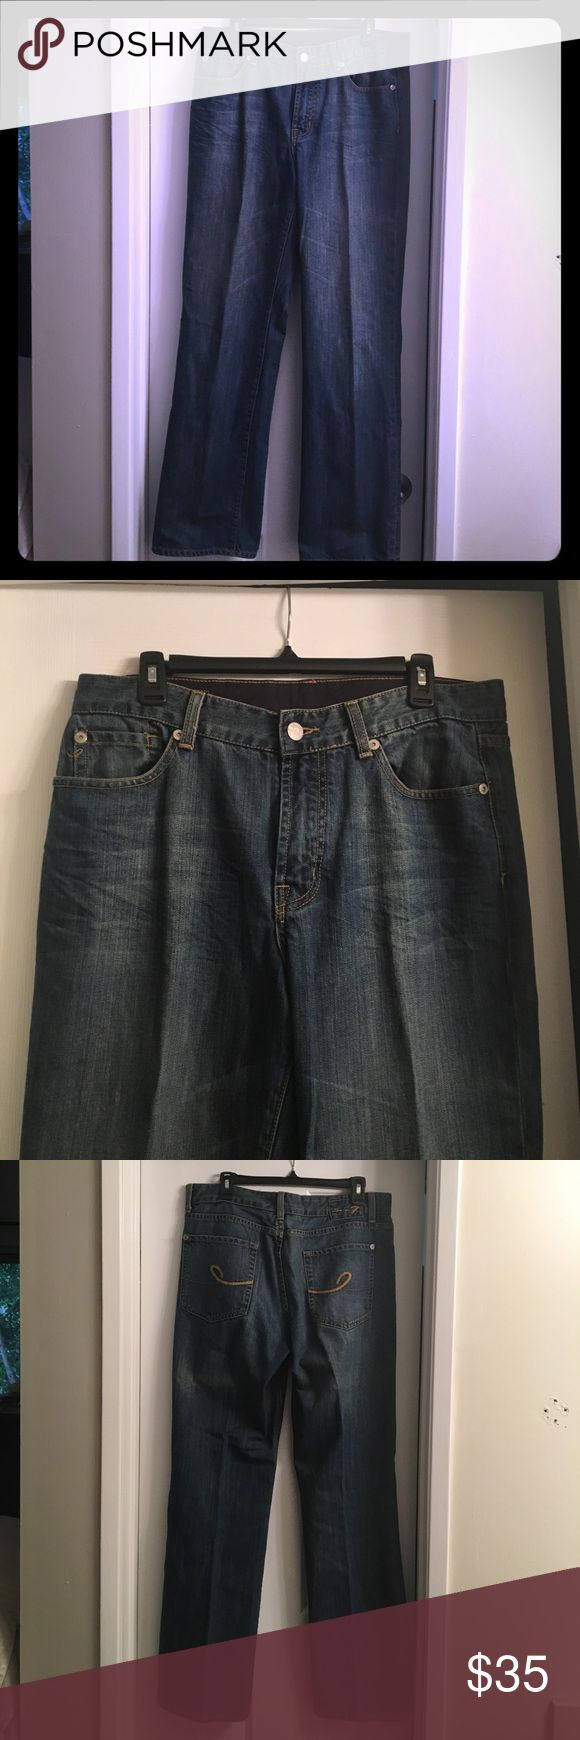 Men's jeans Seven jeans. Excellent condition like new. Seven7 Jeans Relaxed